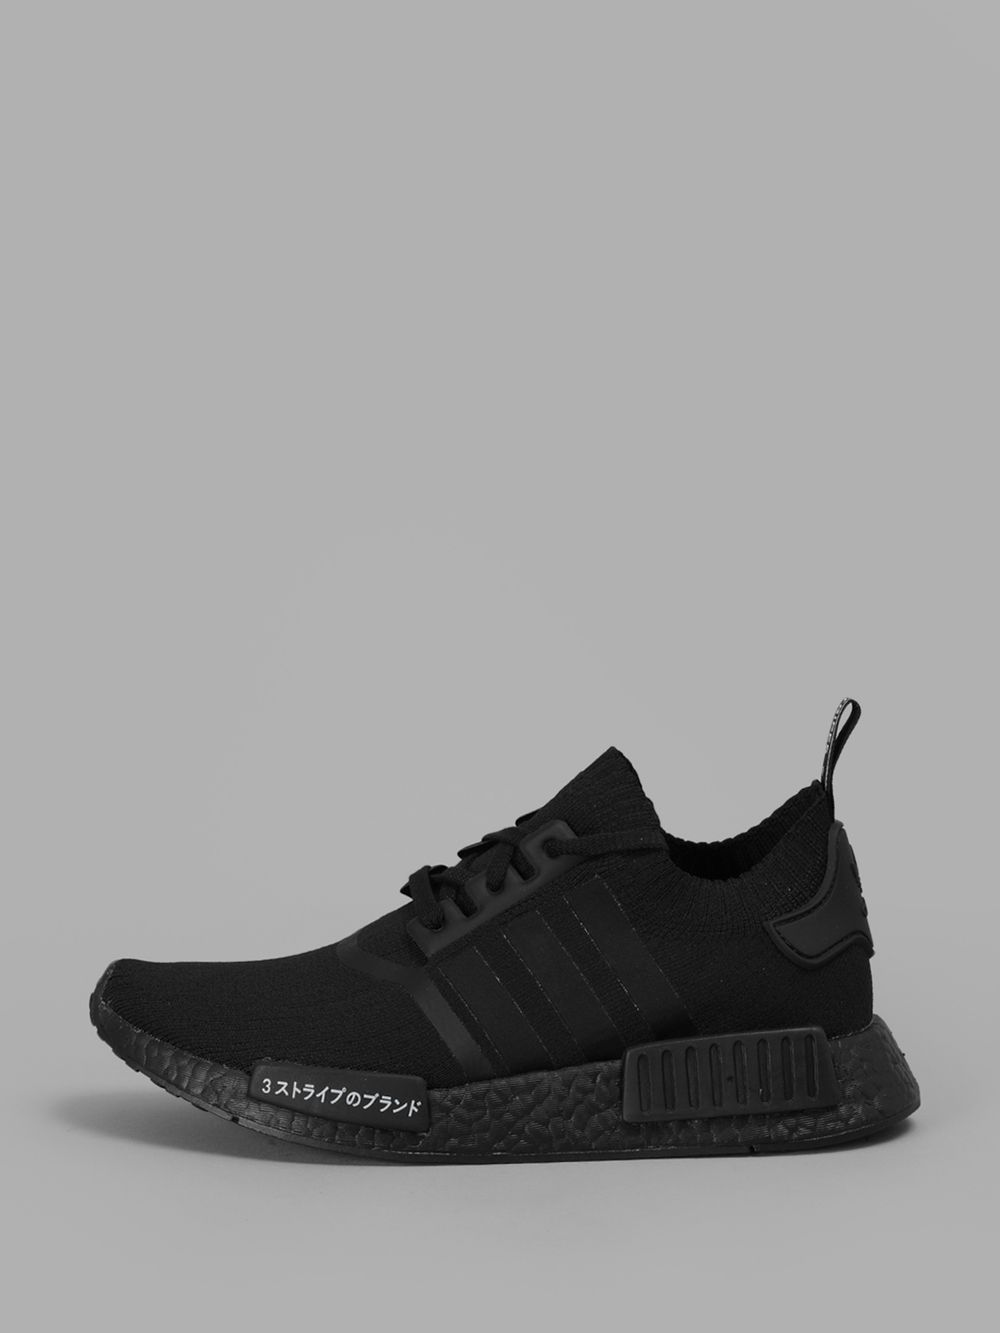 Adidas Originals Nmd Xr1 Pk Triple Black